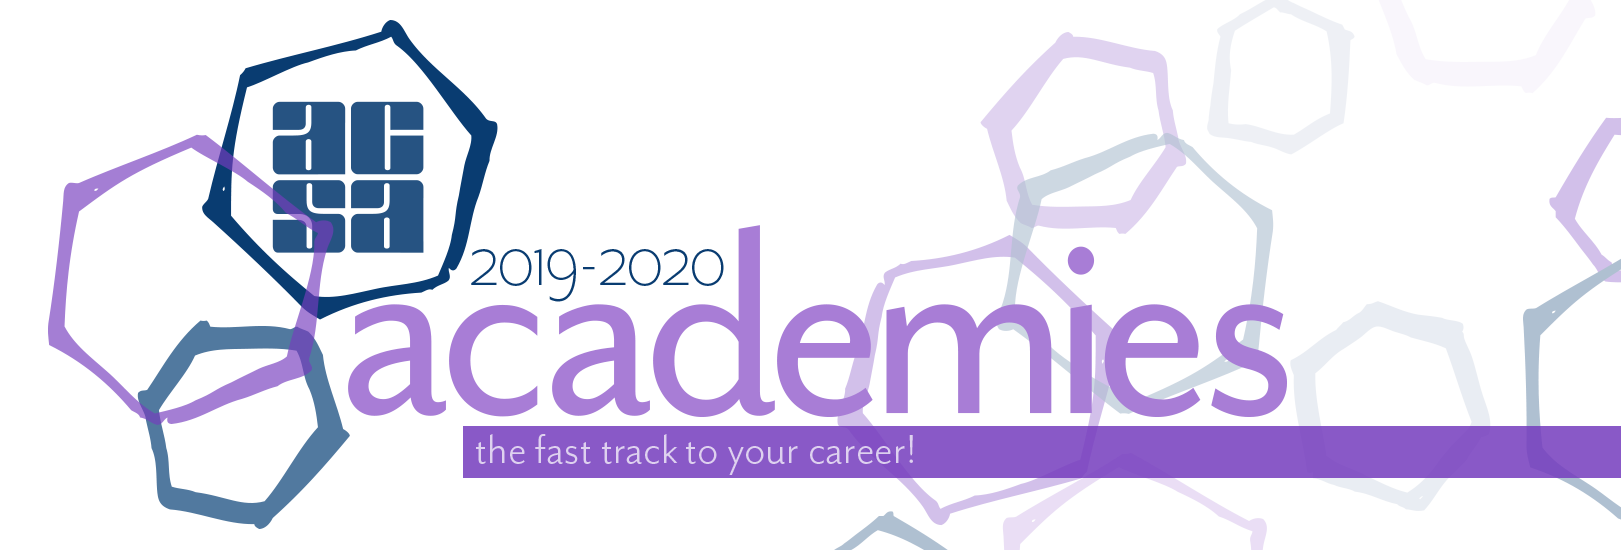 2019-20 Special Education Academy Bakersfield